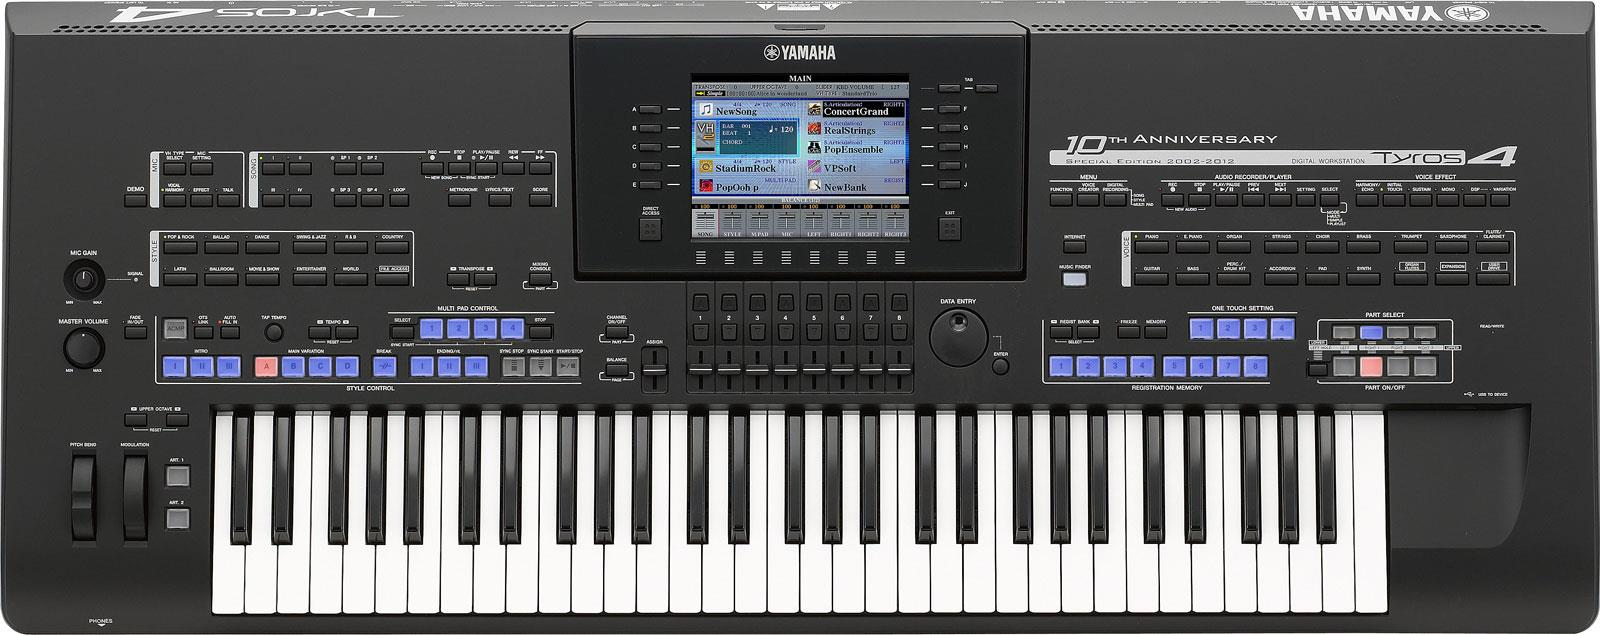 Yamaha Tyros 4 Midi Files - ondemanderogon